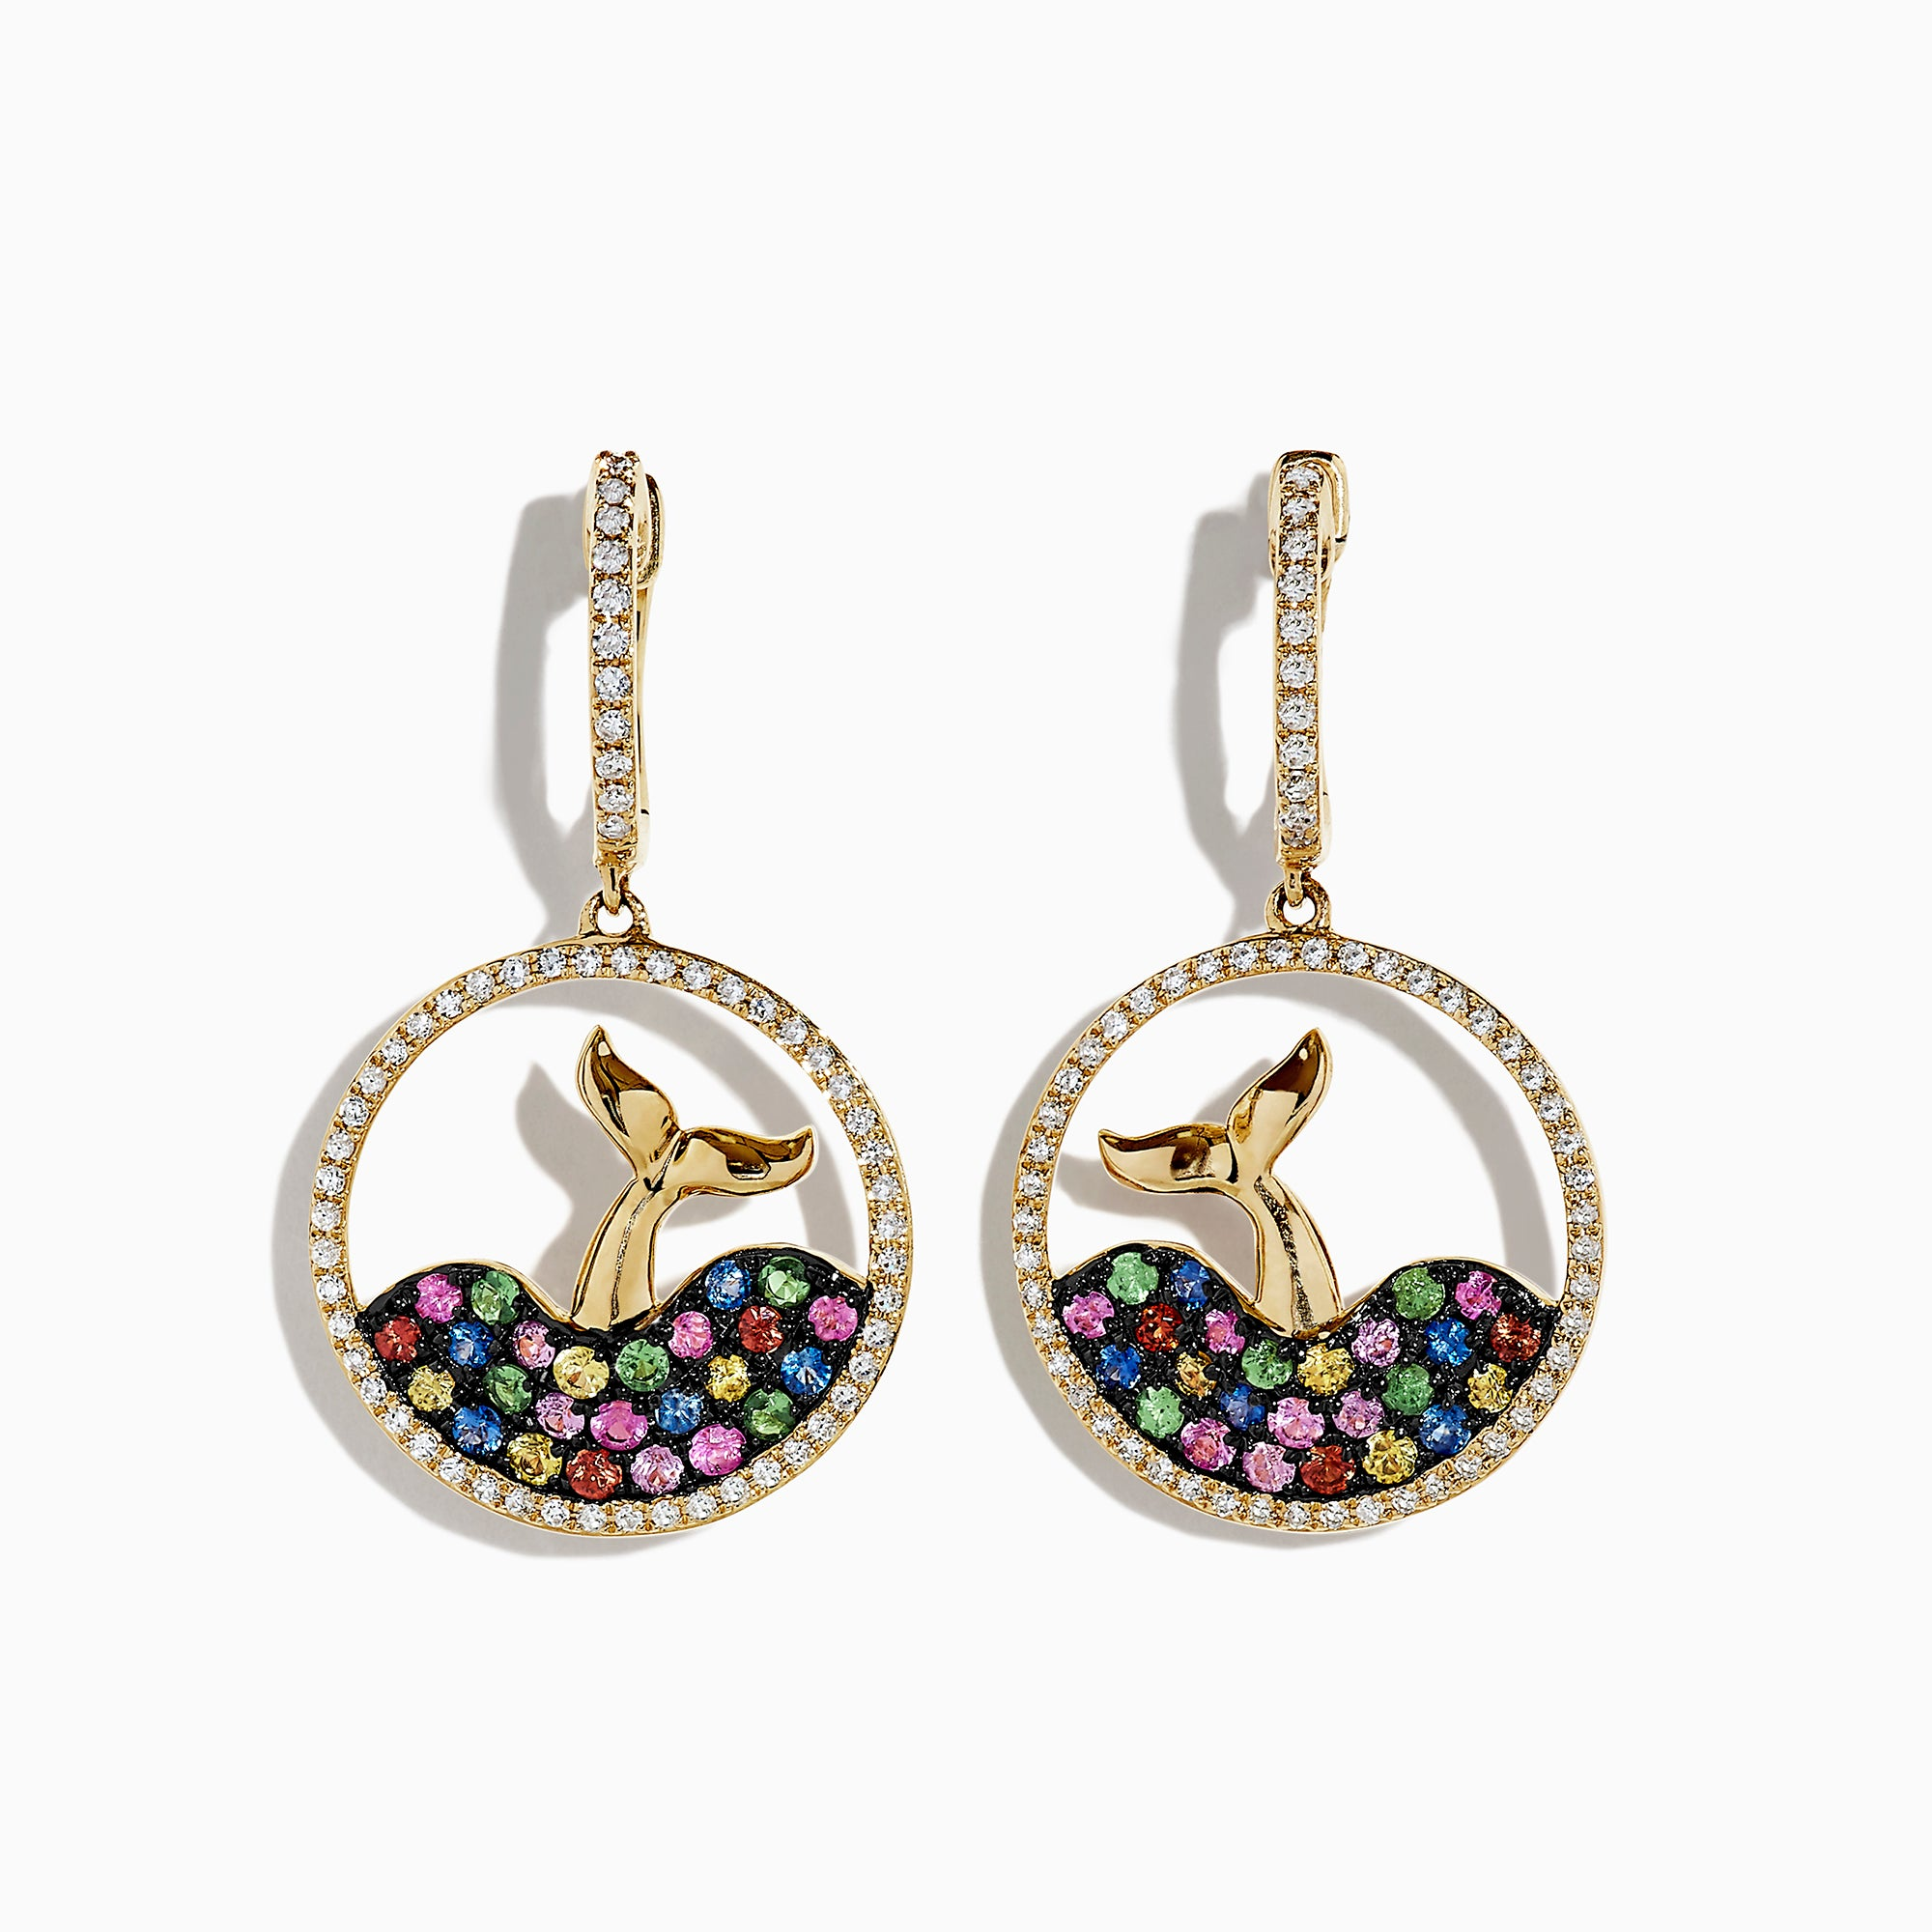 Effy 14K Gold Multi Sapphire & Diamond Whale's Tail Earrings, 1.35 TCW